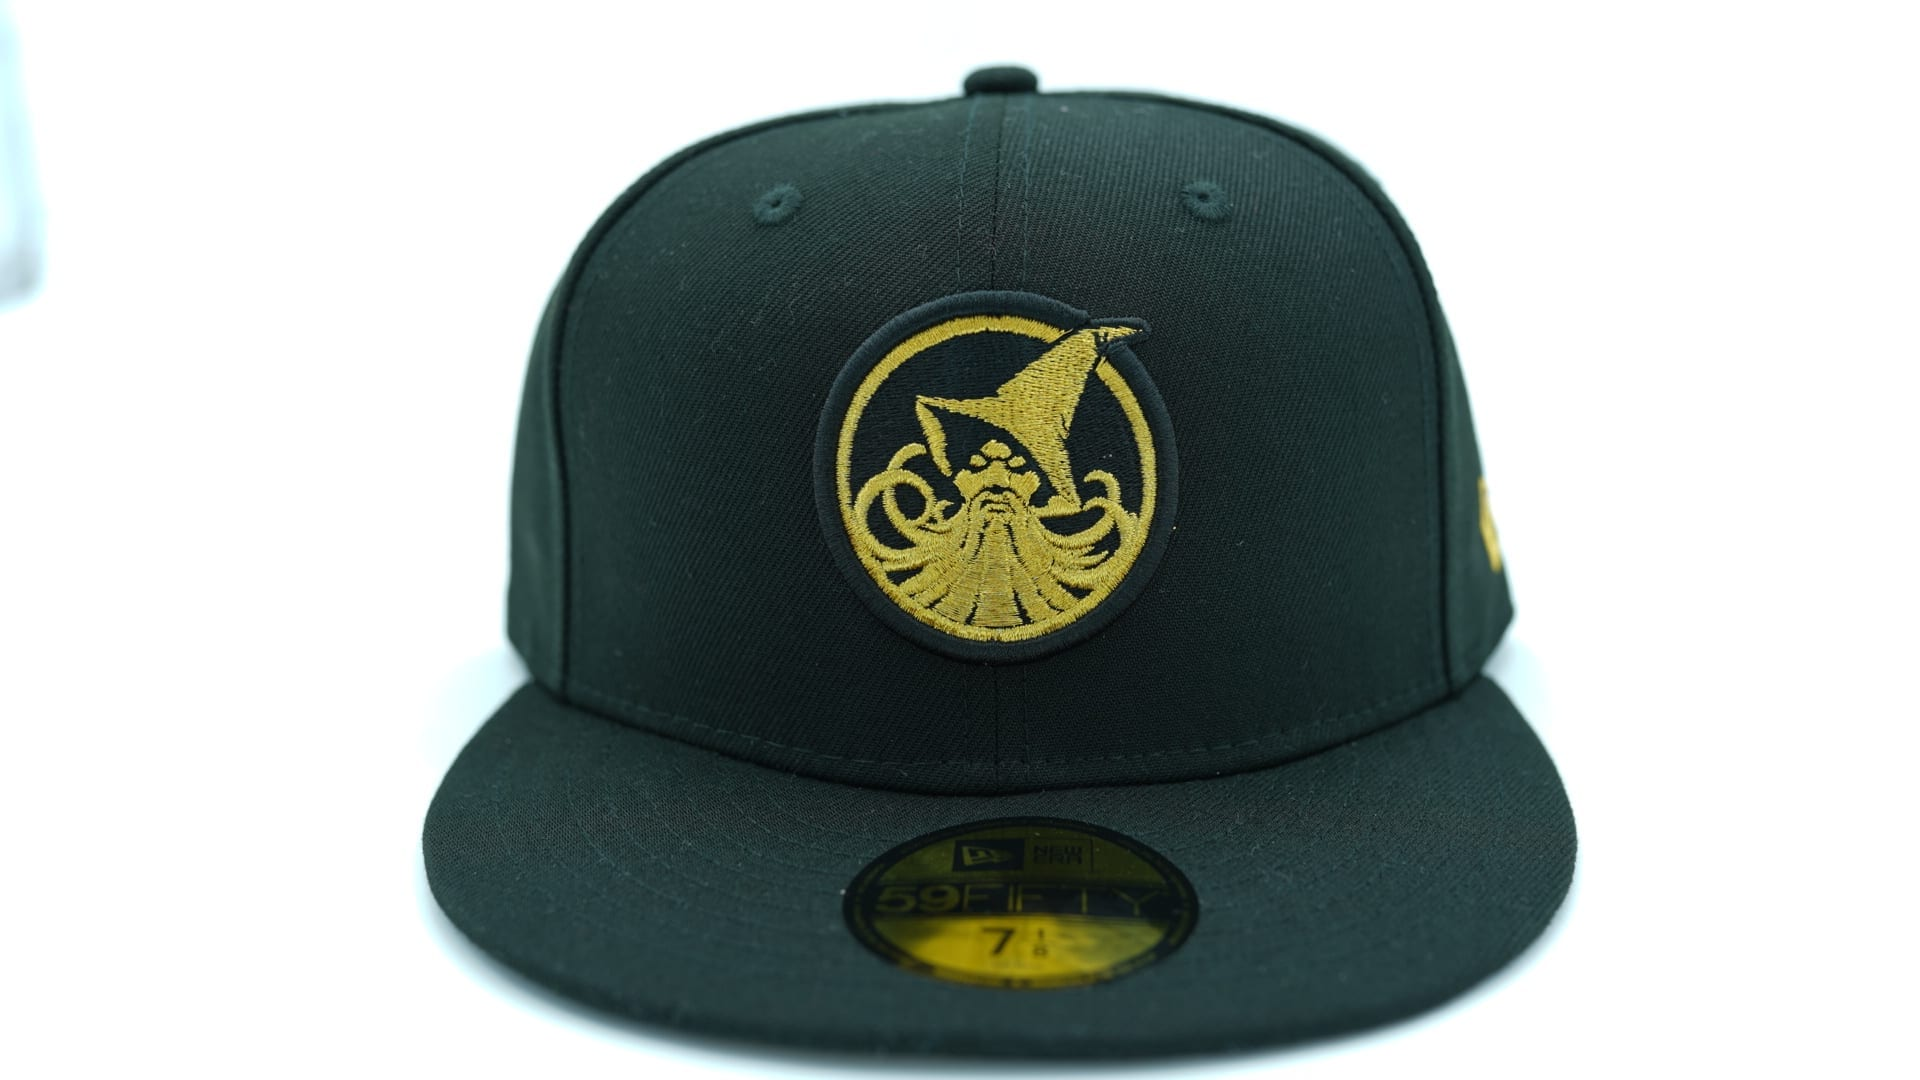 Catcher NE Hybrid 59Fifty Cap by THE 7 LINE x NEW ERA